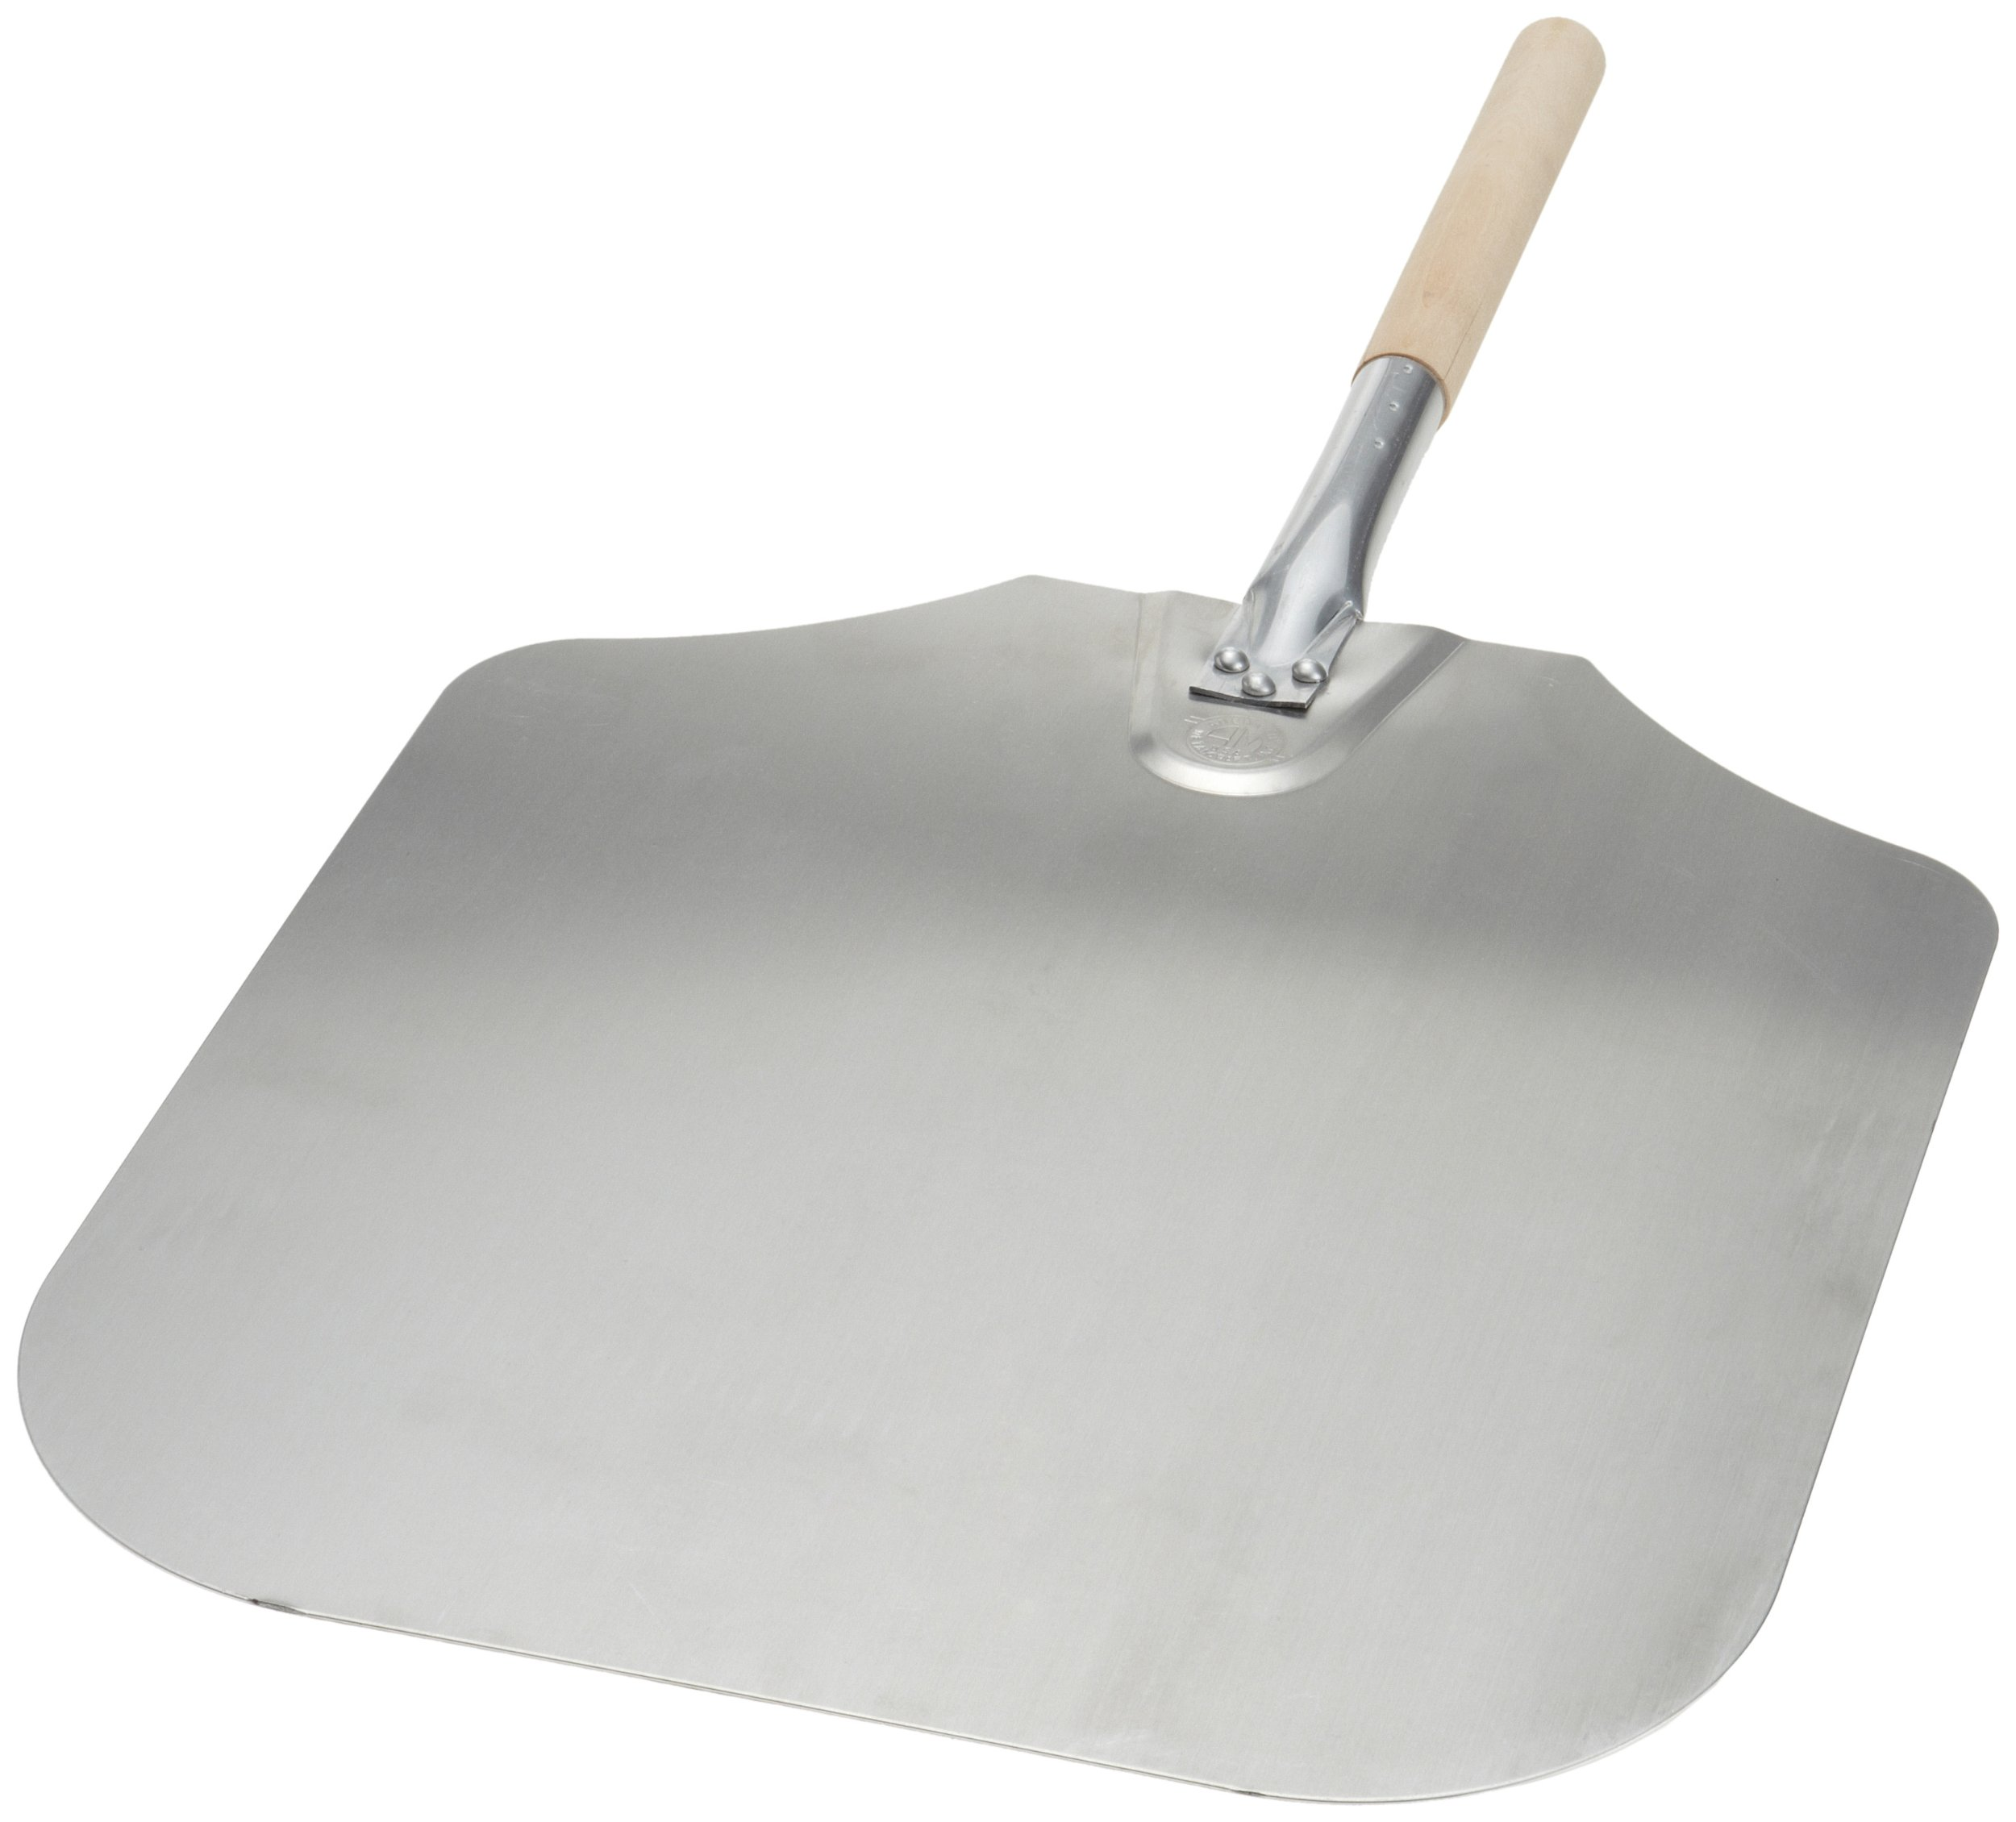 Kitchen Supply 16-Inch x 18-Inch Aluminum Pizza Peel with Wood Handle